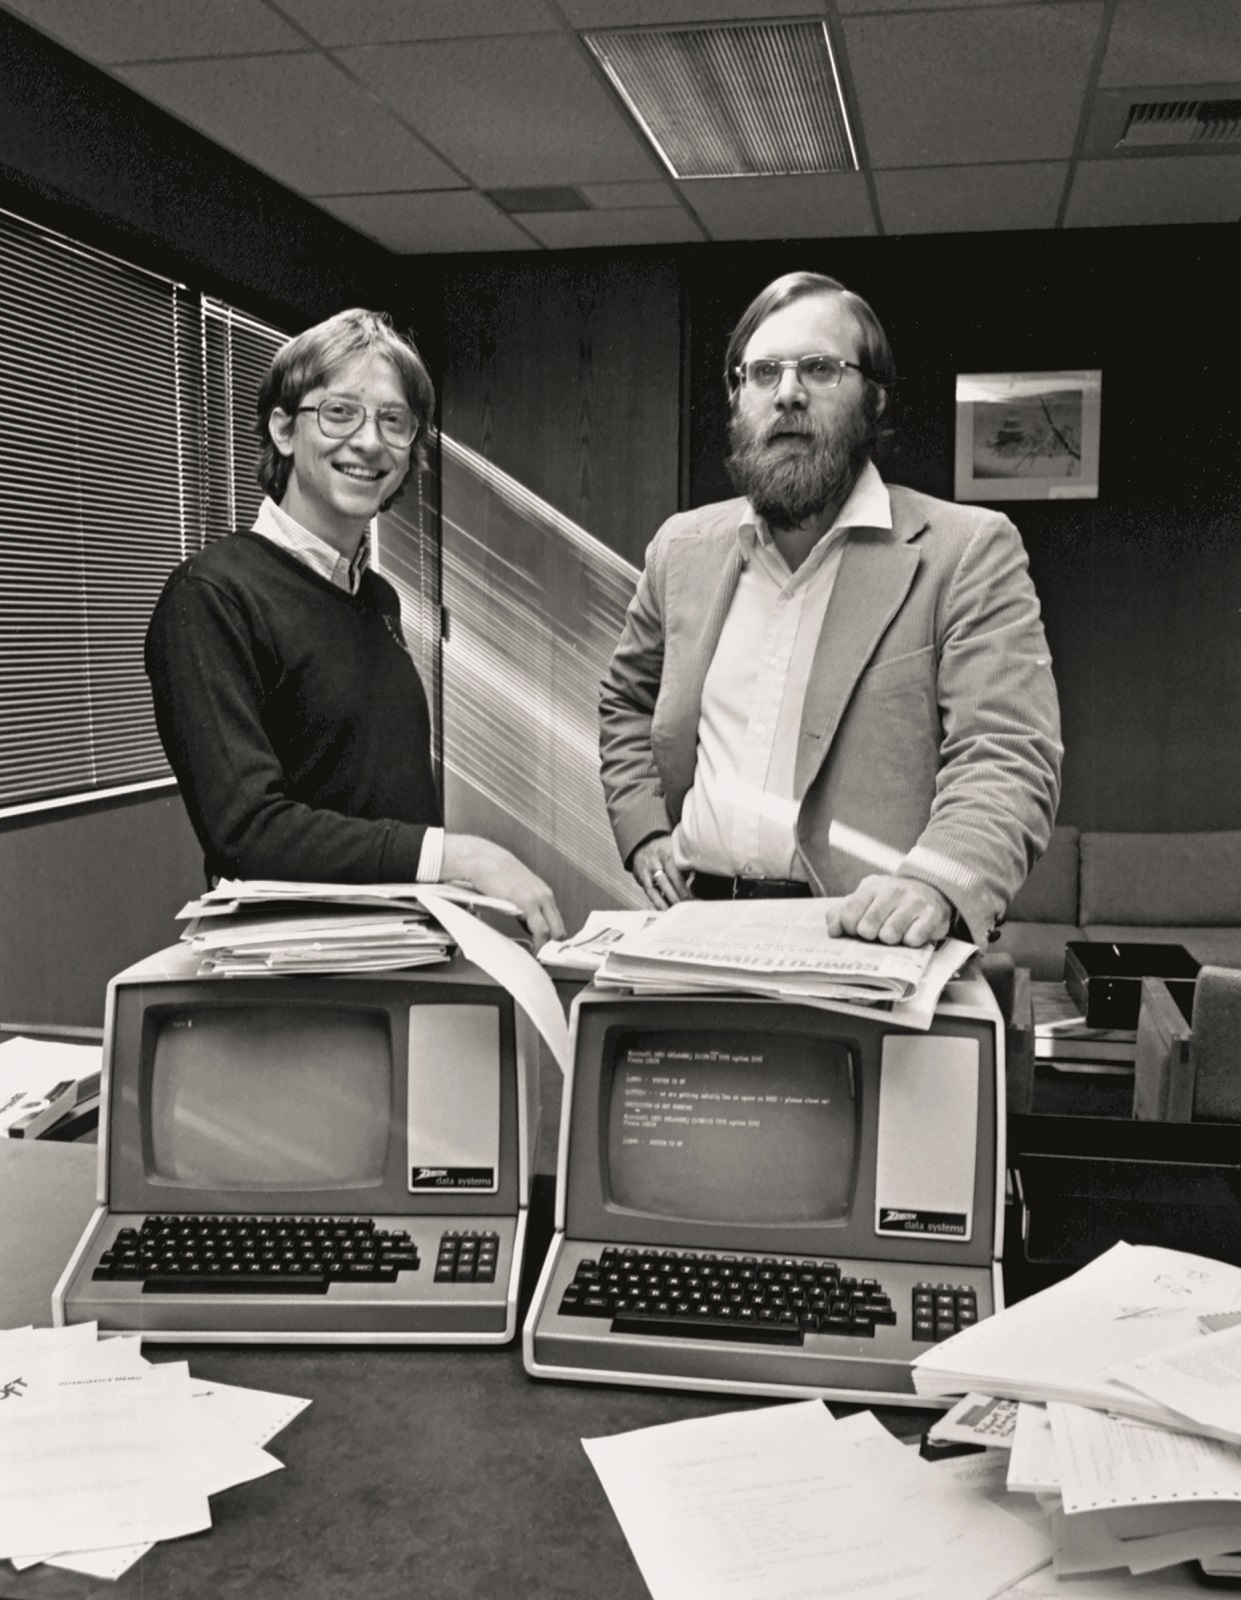 Bill Gates and Paul Allen, 1982. .Feb. 10, 1982., Image: 43563372, License: Rights-managed, Restrictions: * U.S. Tabloid Rights OUT *, Model Release: no, Credit line: s03 / Zuma Press / Profimedia